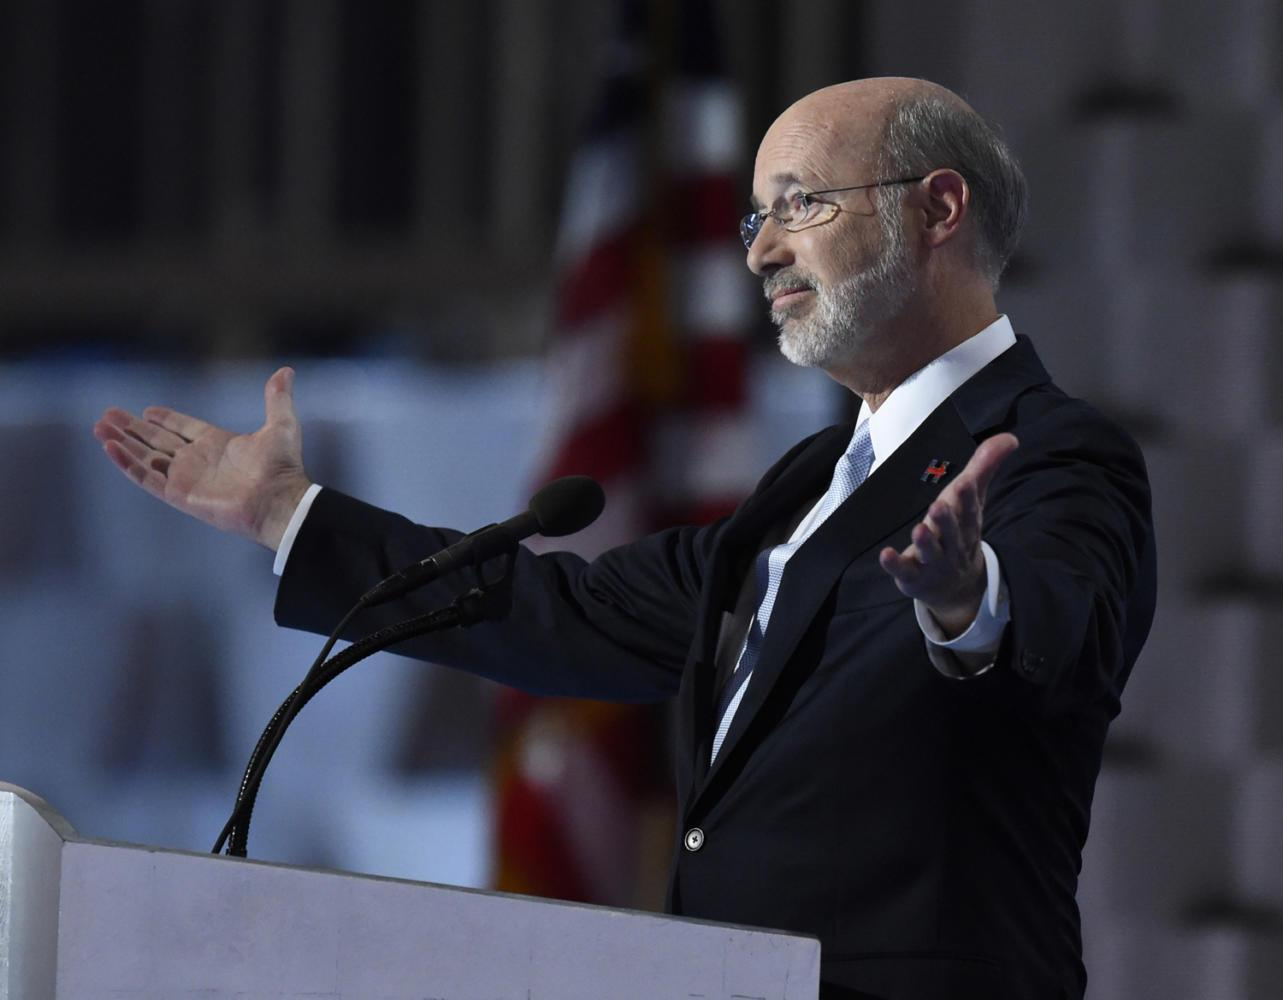 Pennsylvania Gov. Tom Wolf speaks during the last day of the 2016 Democratic National Convention at the Wells Fargo Center in Philadelphia. (Clem Murray/Philadelphia Inquirer/TNS)